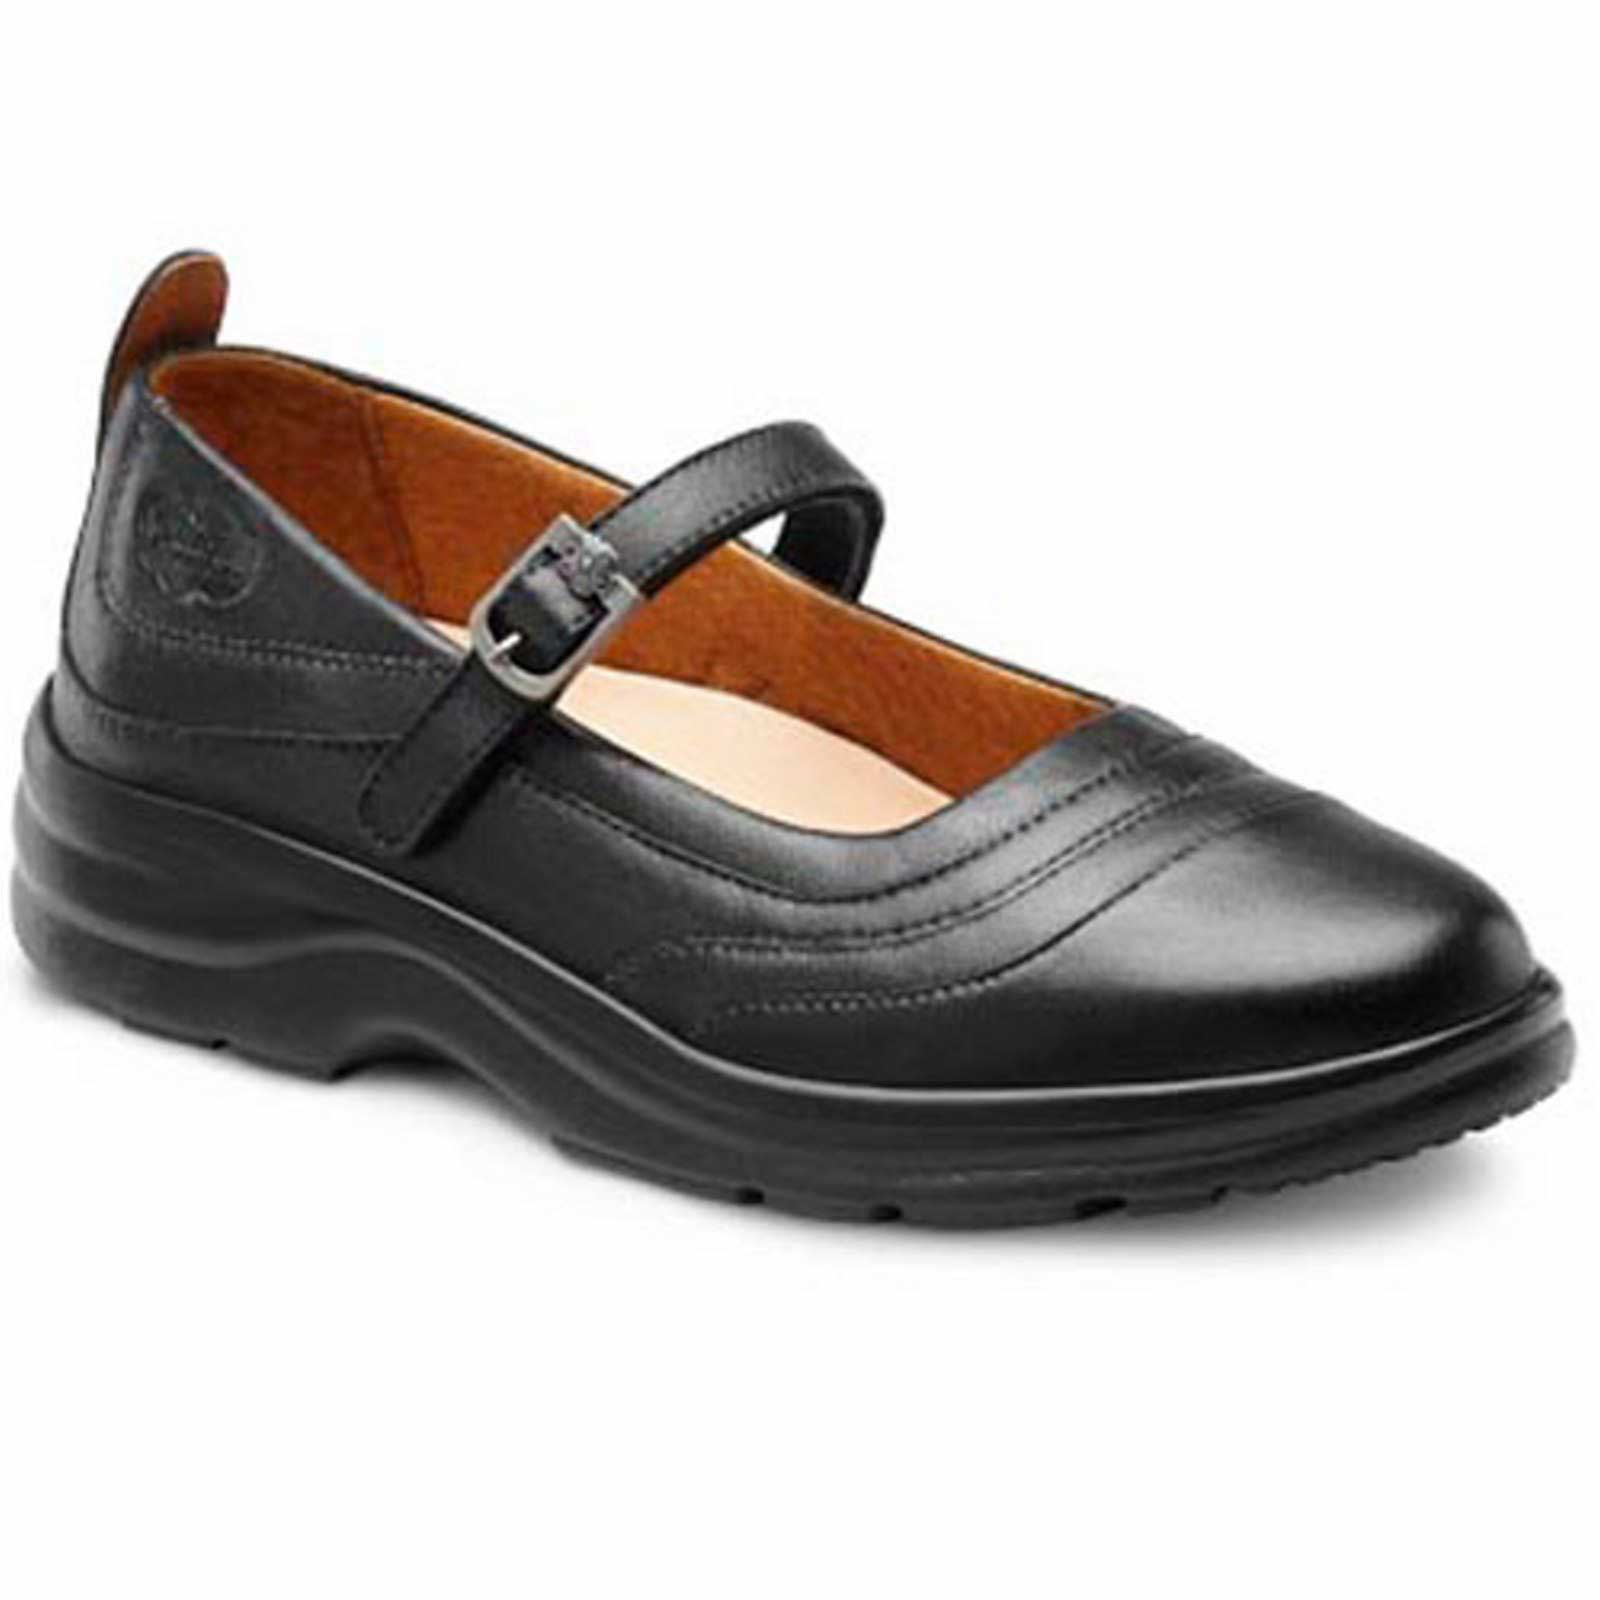 Dr Comfort Shoes - Flute - Women's Therapeutic Diabetic Shoe with Gel Plus Inserts - Casual, Dress - Narrow (AA) - Extra Depth - at Sears.com